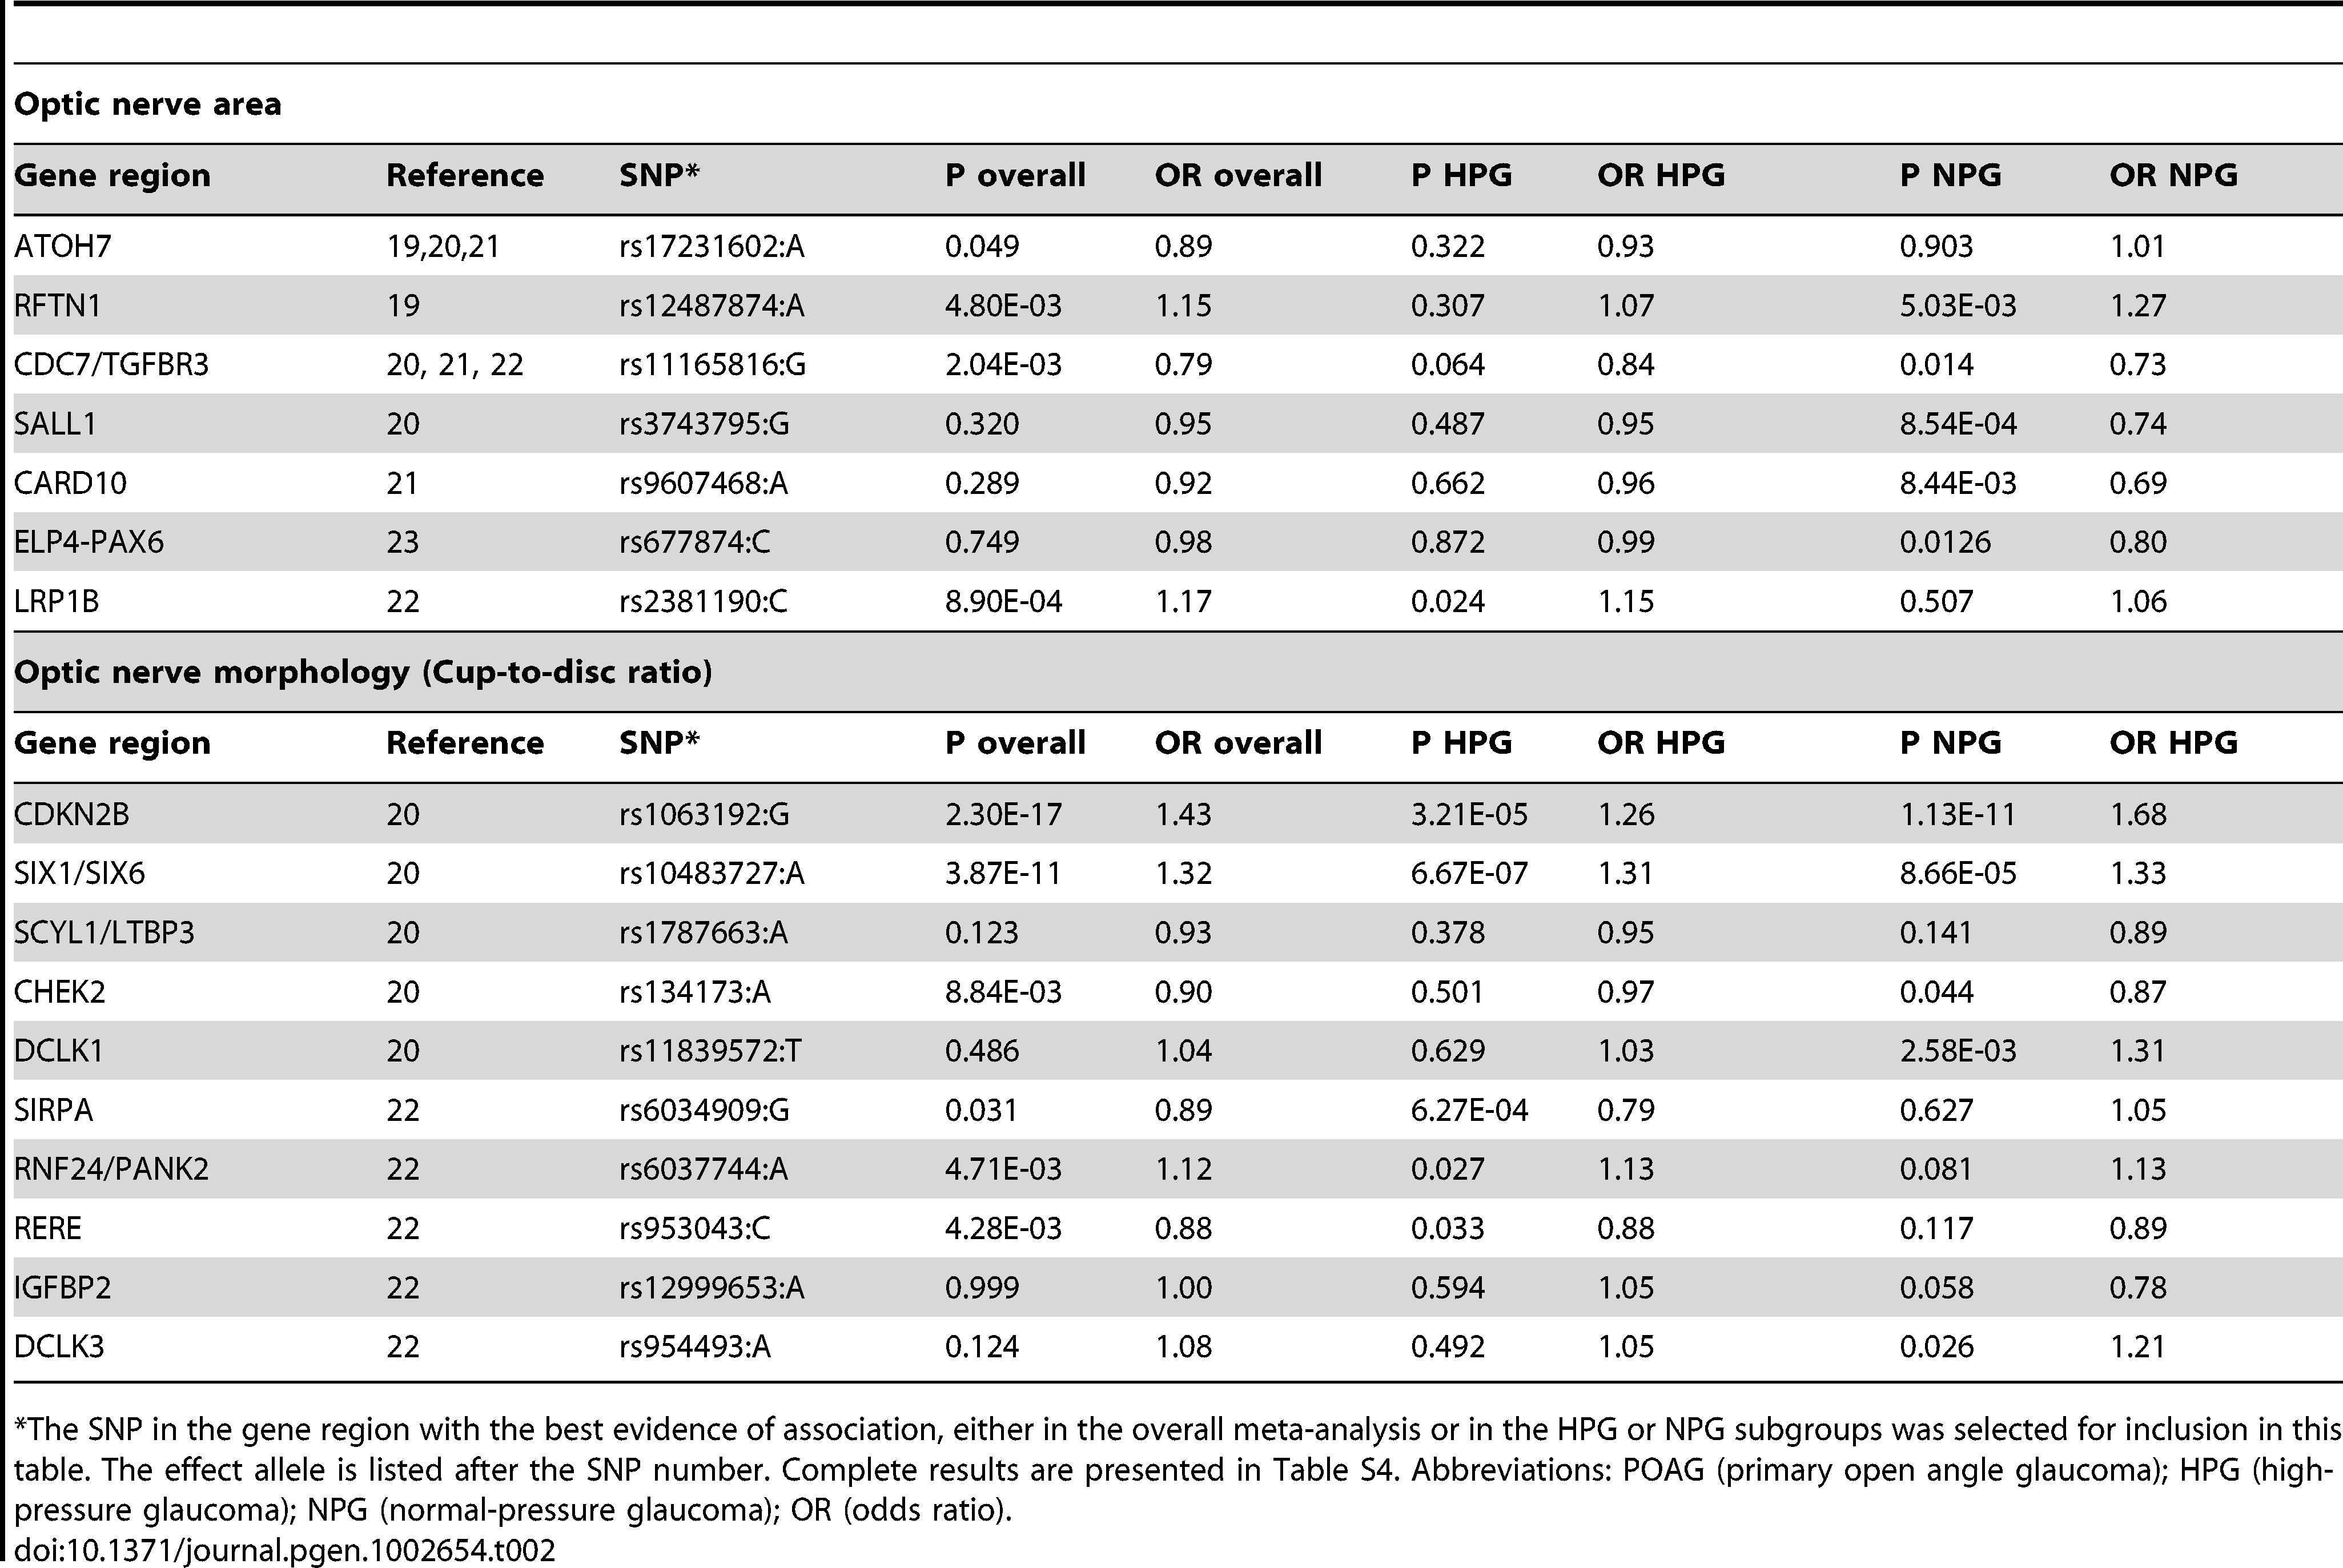 Glaucoma association results for SNPs in gene regions associated with quantitative optic nerve parameters optic nerve area and cup-to-disc ratio (CDR).